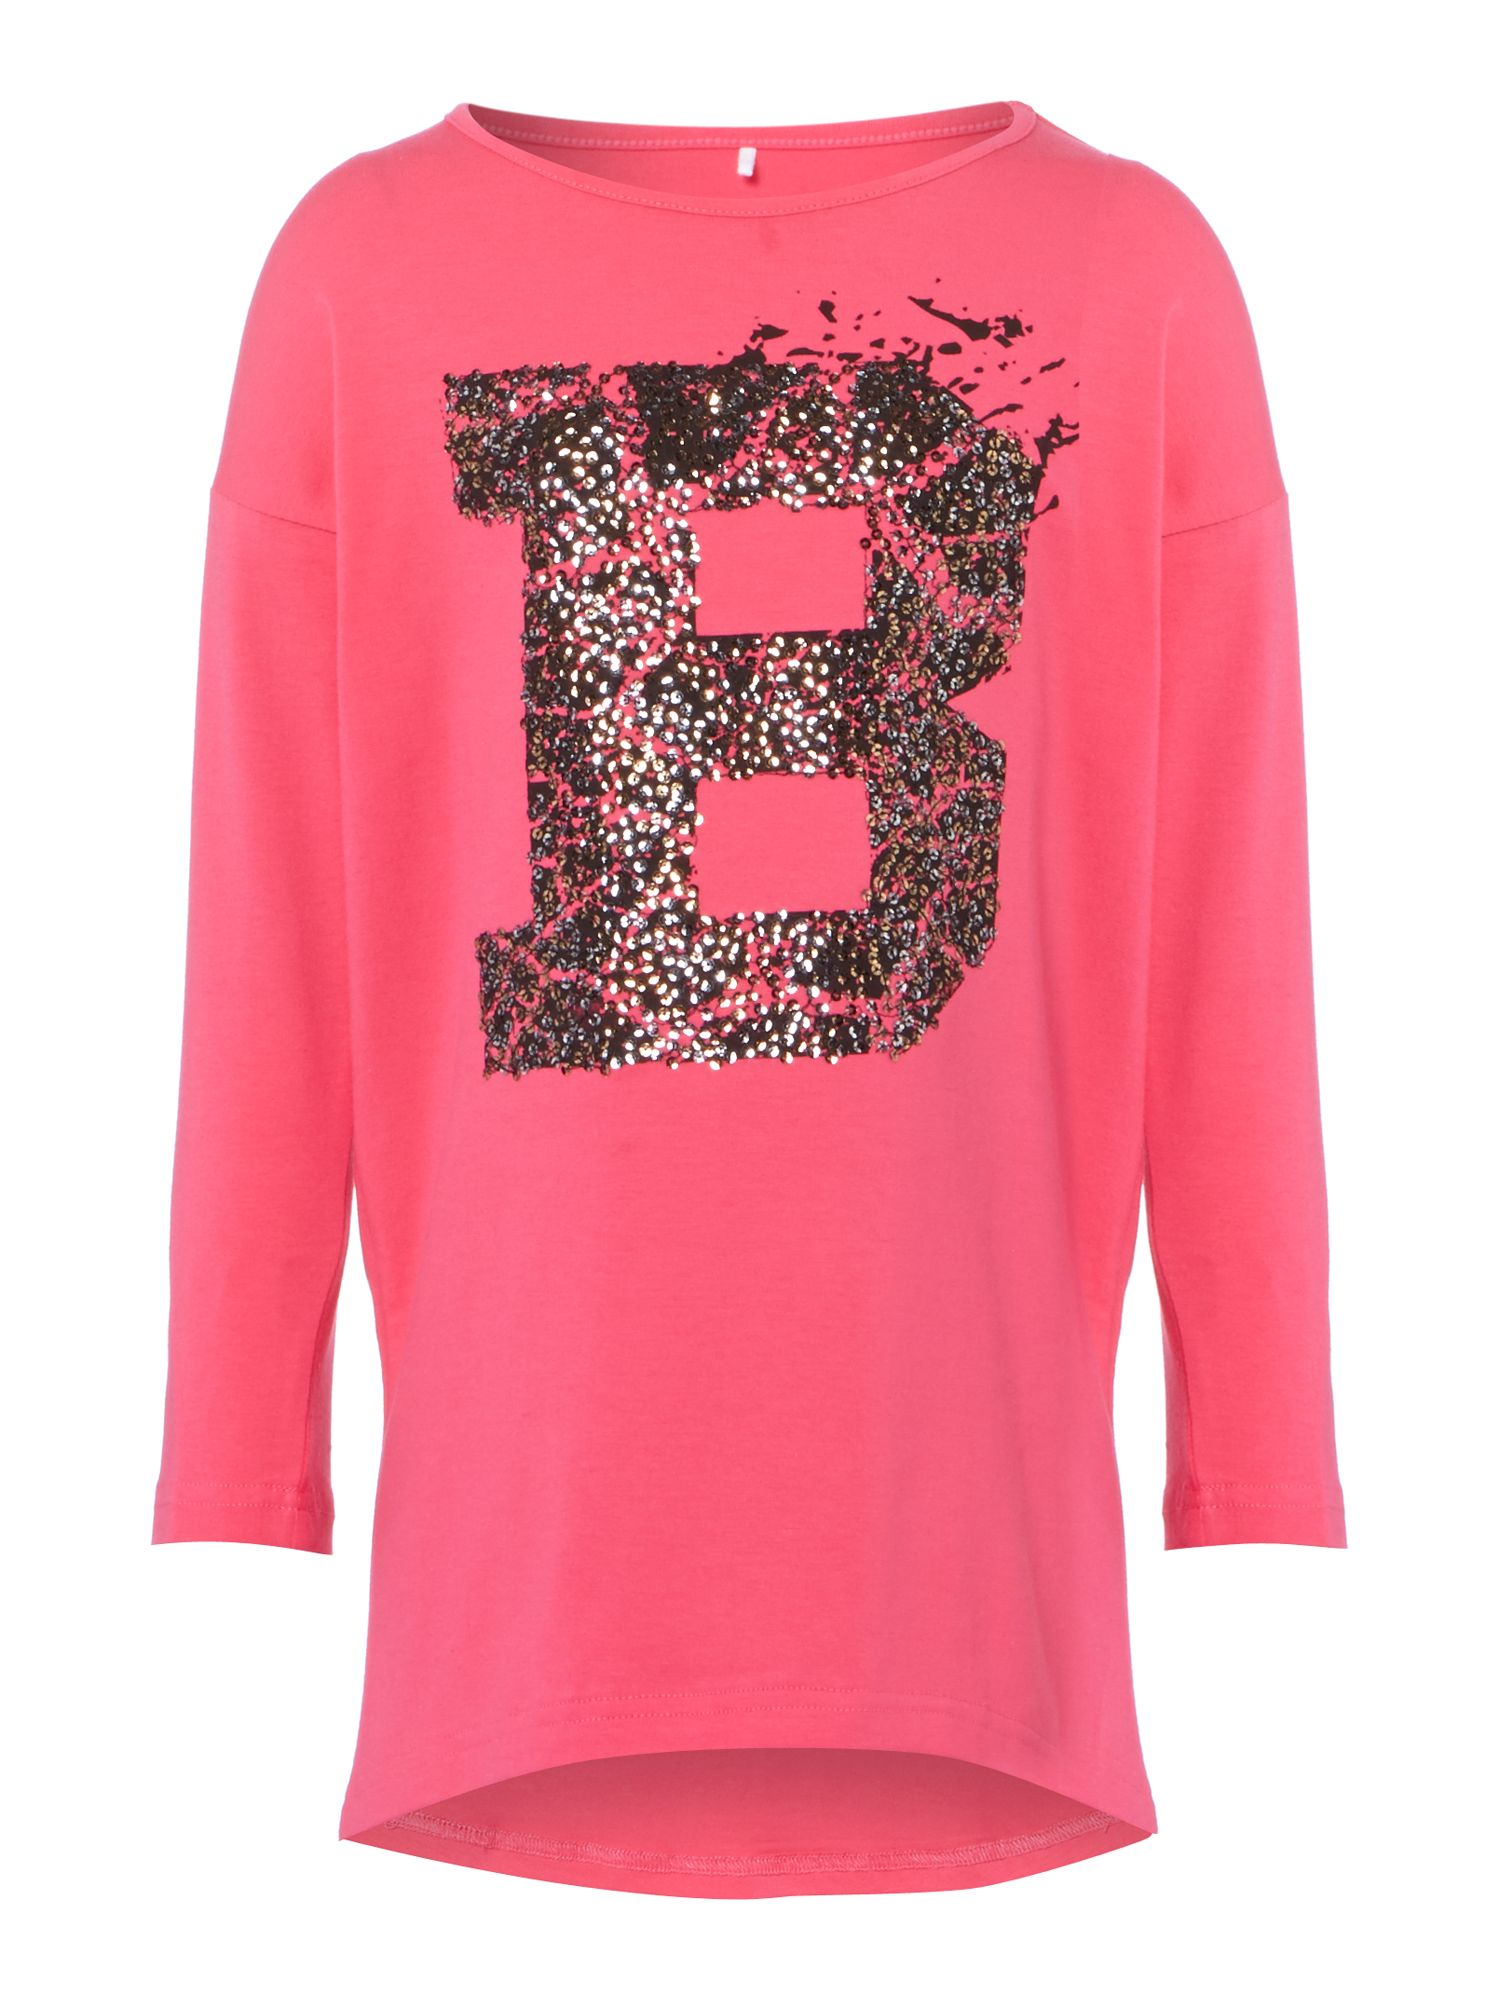 Girls B logo tunic